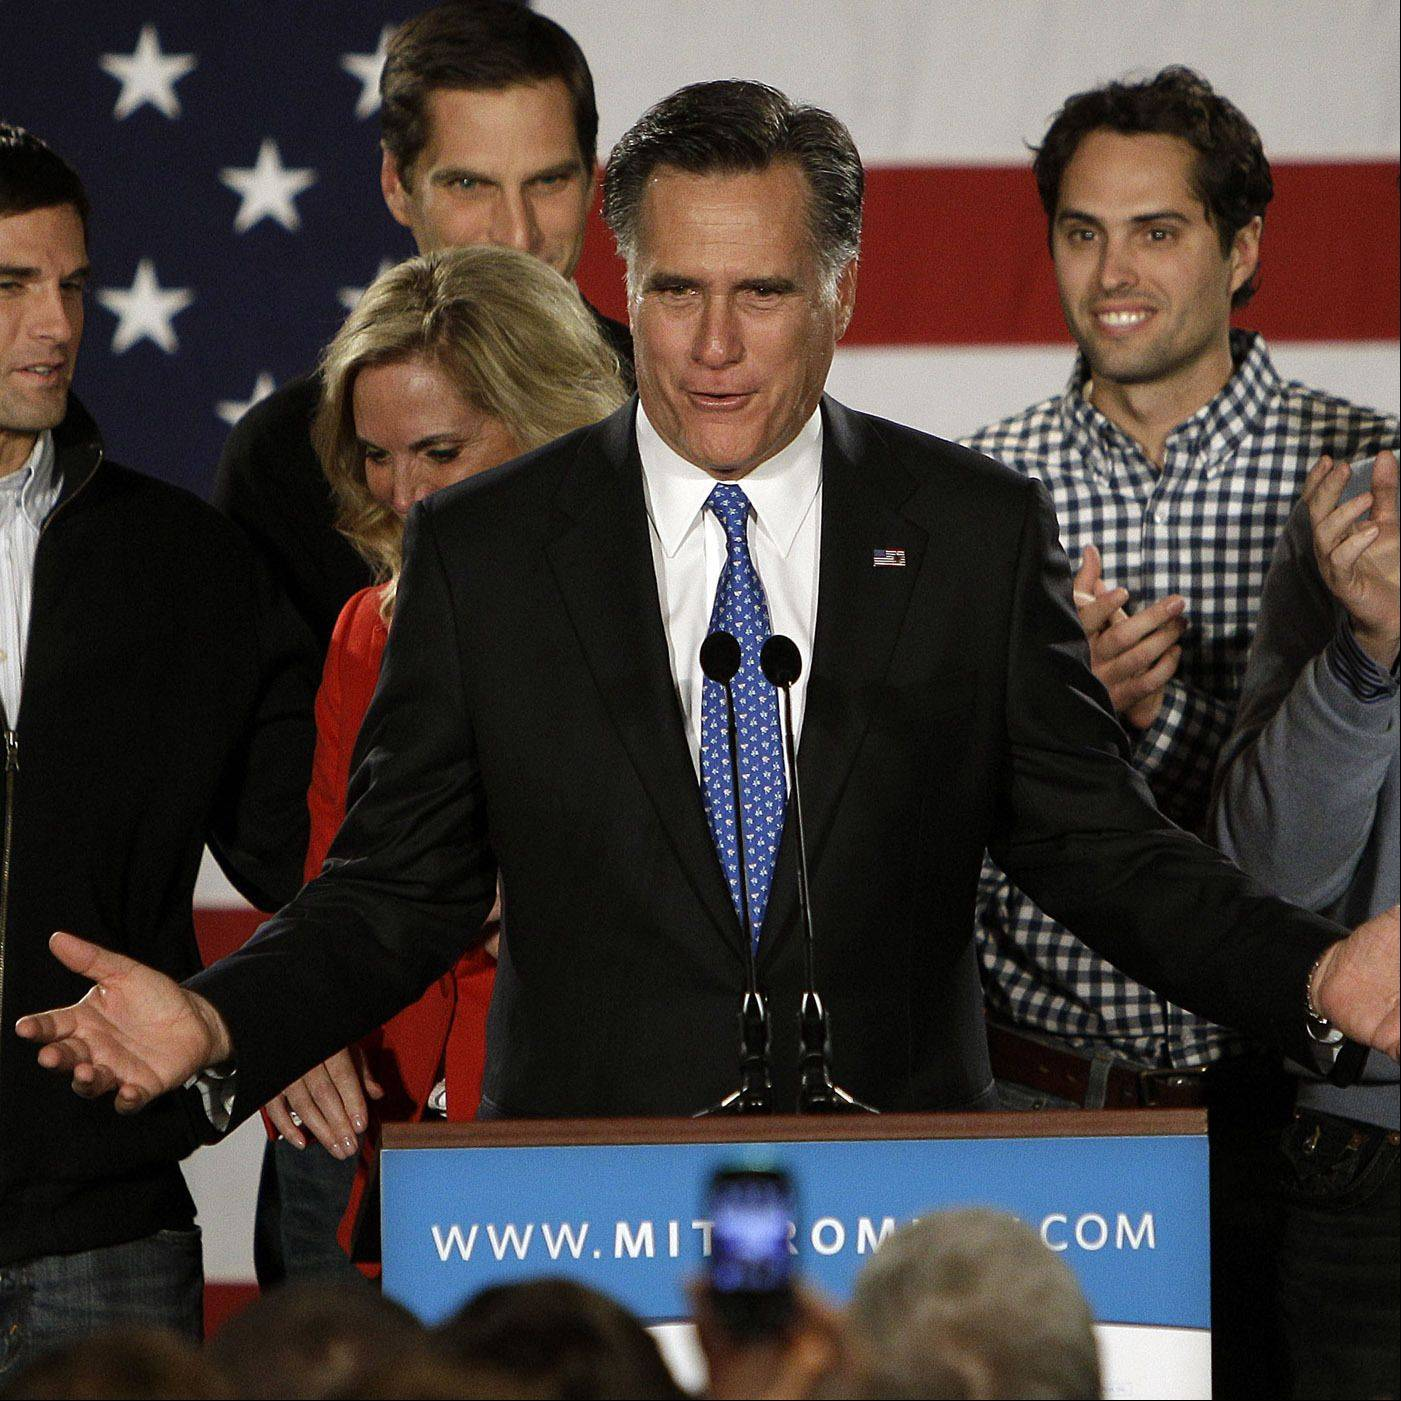 Mitt Romney addresses with his family behind him during a Romney for President Iowa Caucus night rally in Des Moines, Iowa, Tuesday, Jan. 3, 2012.